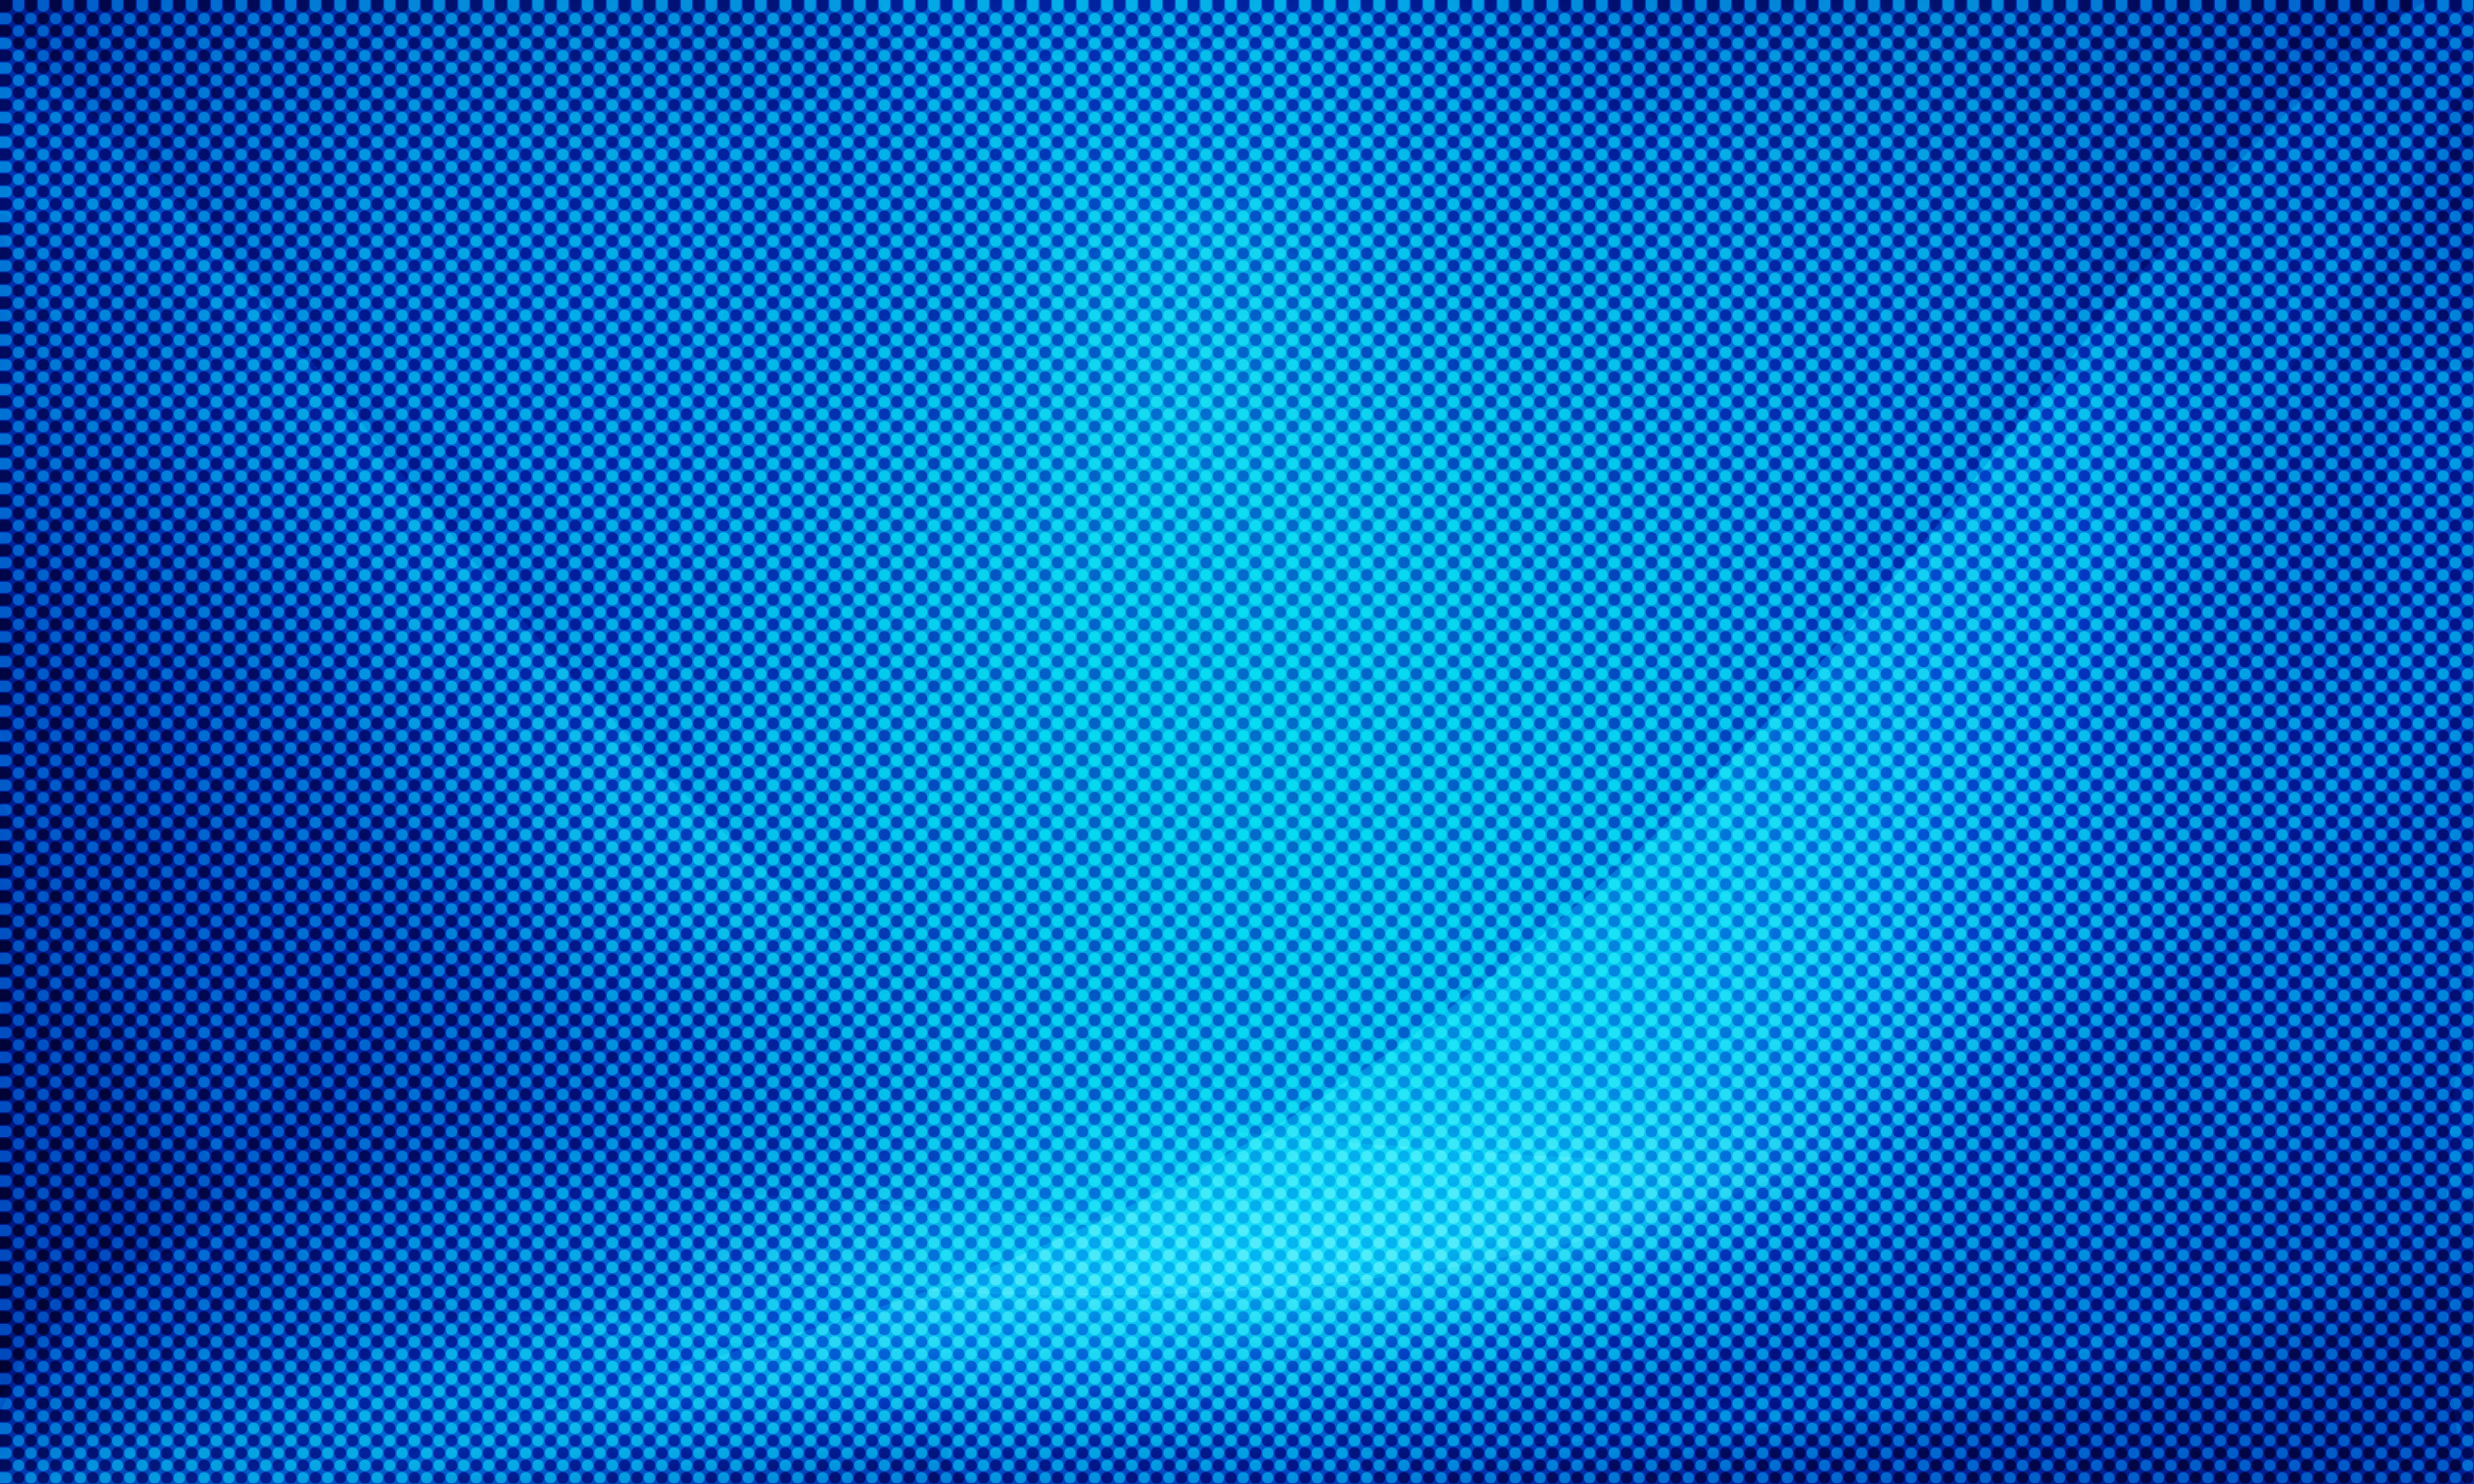 Blue Background Images Adorable HDQ Backgrounds of Blue 5000x3000